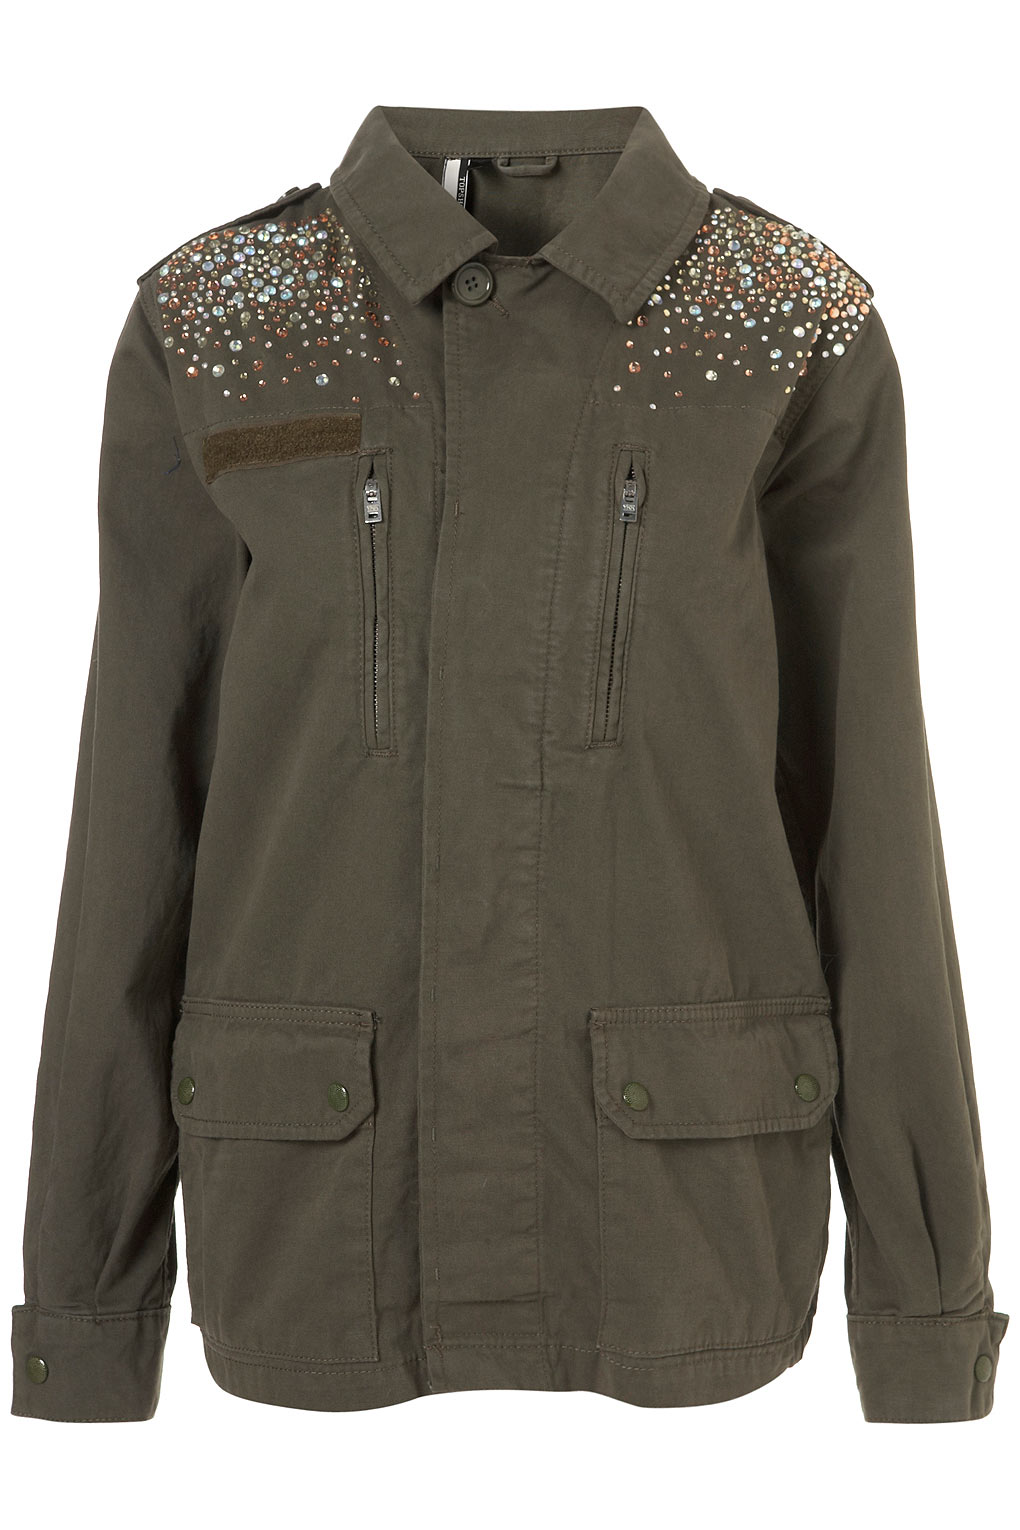 Army Jackets Womens